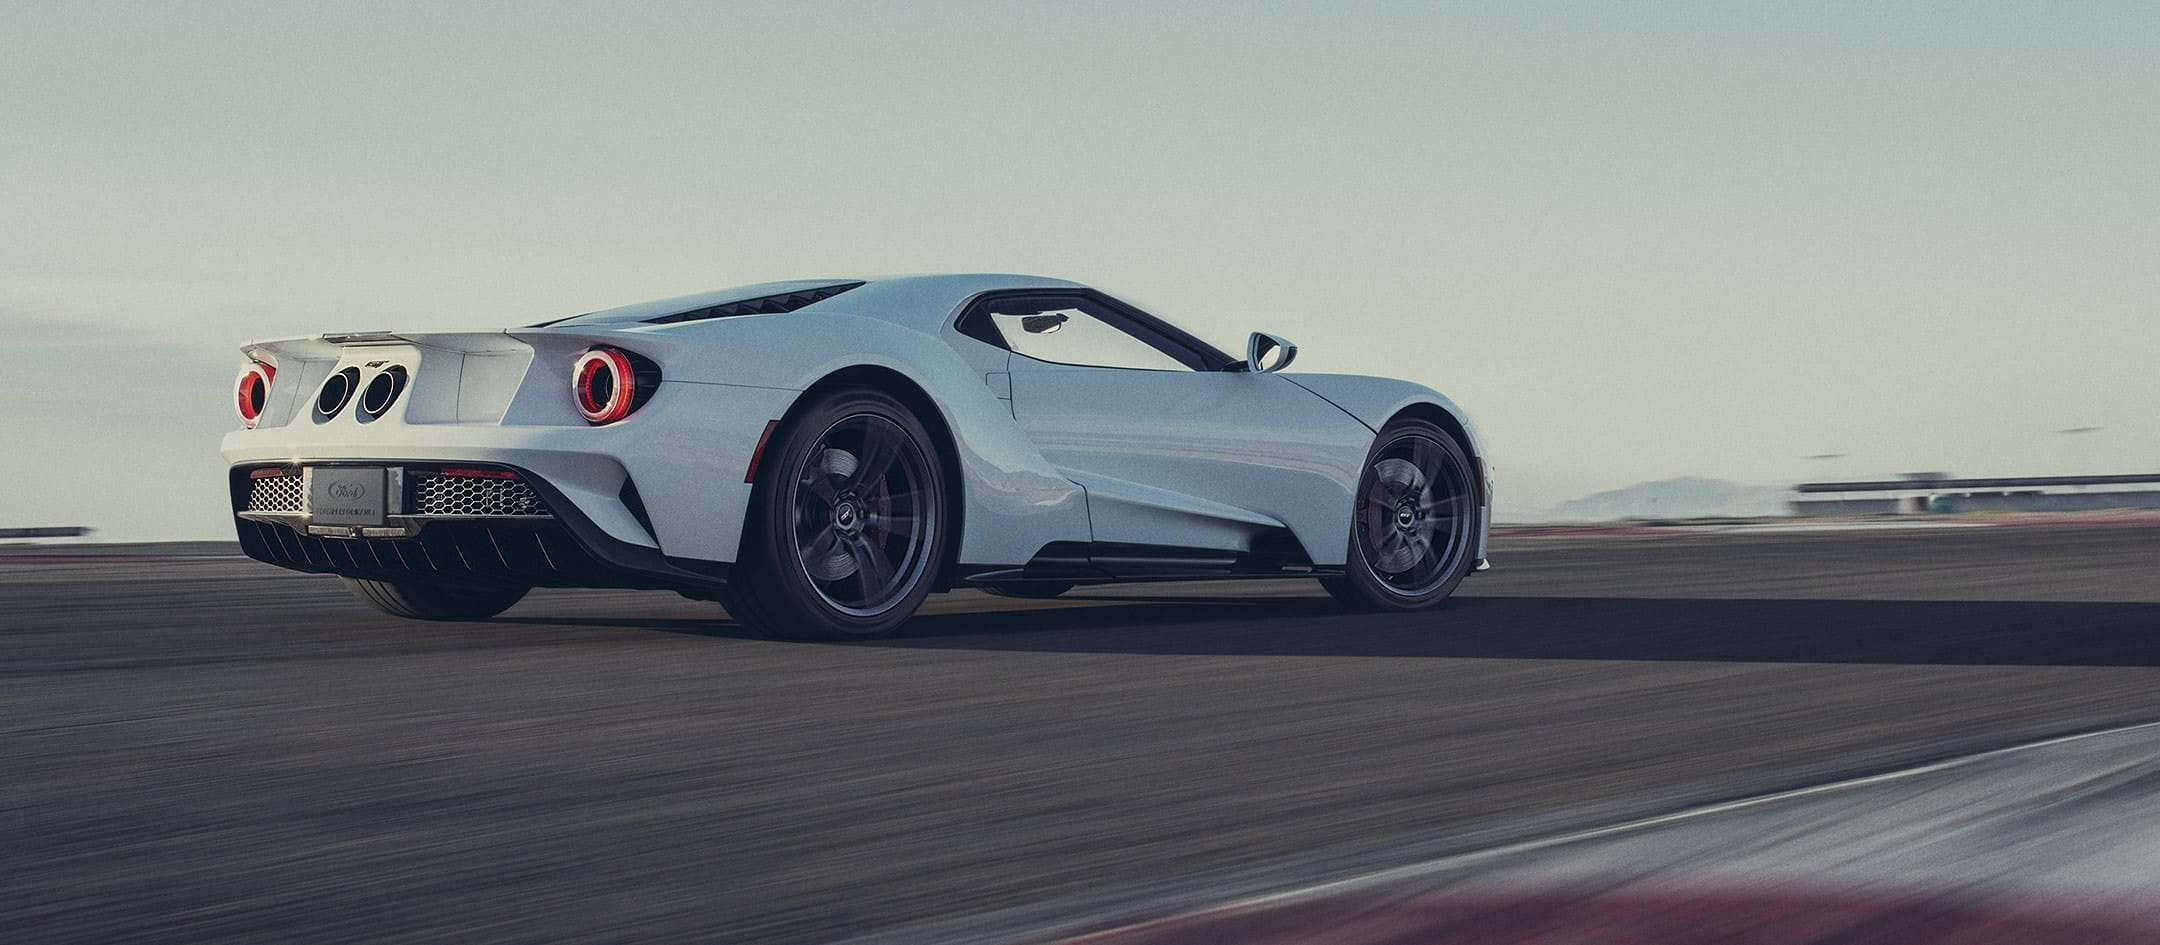 21 All New 2019 Ford Gt Specs Release Date